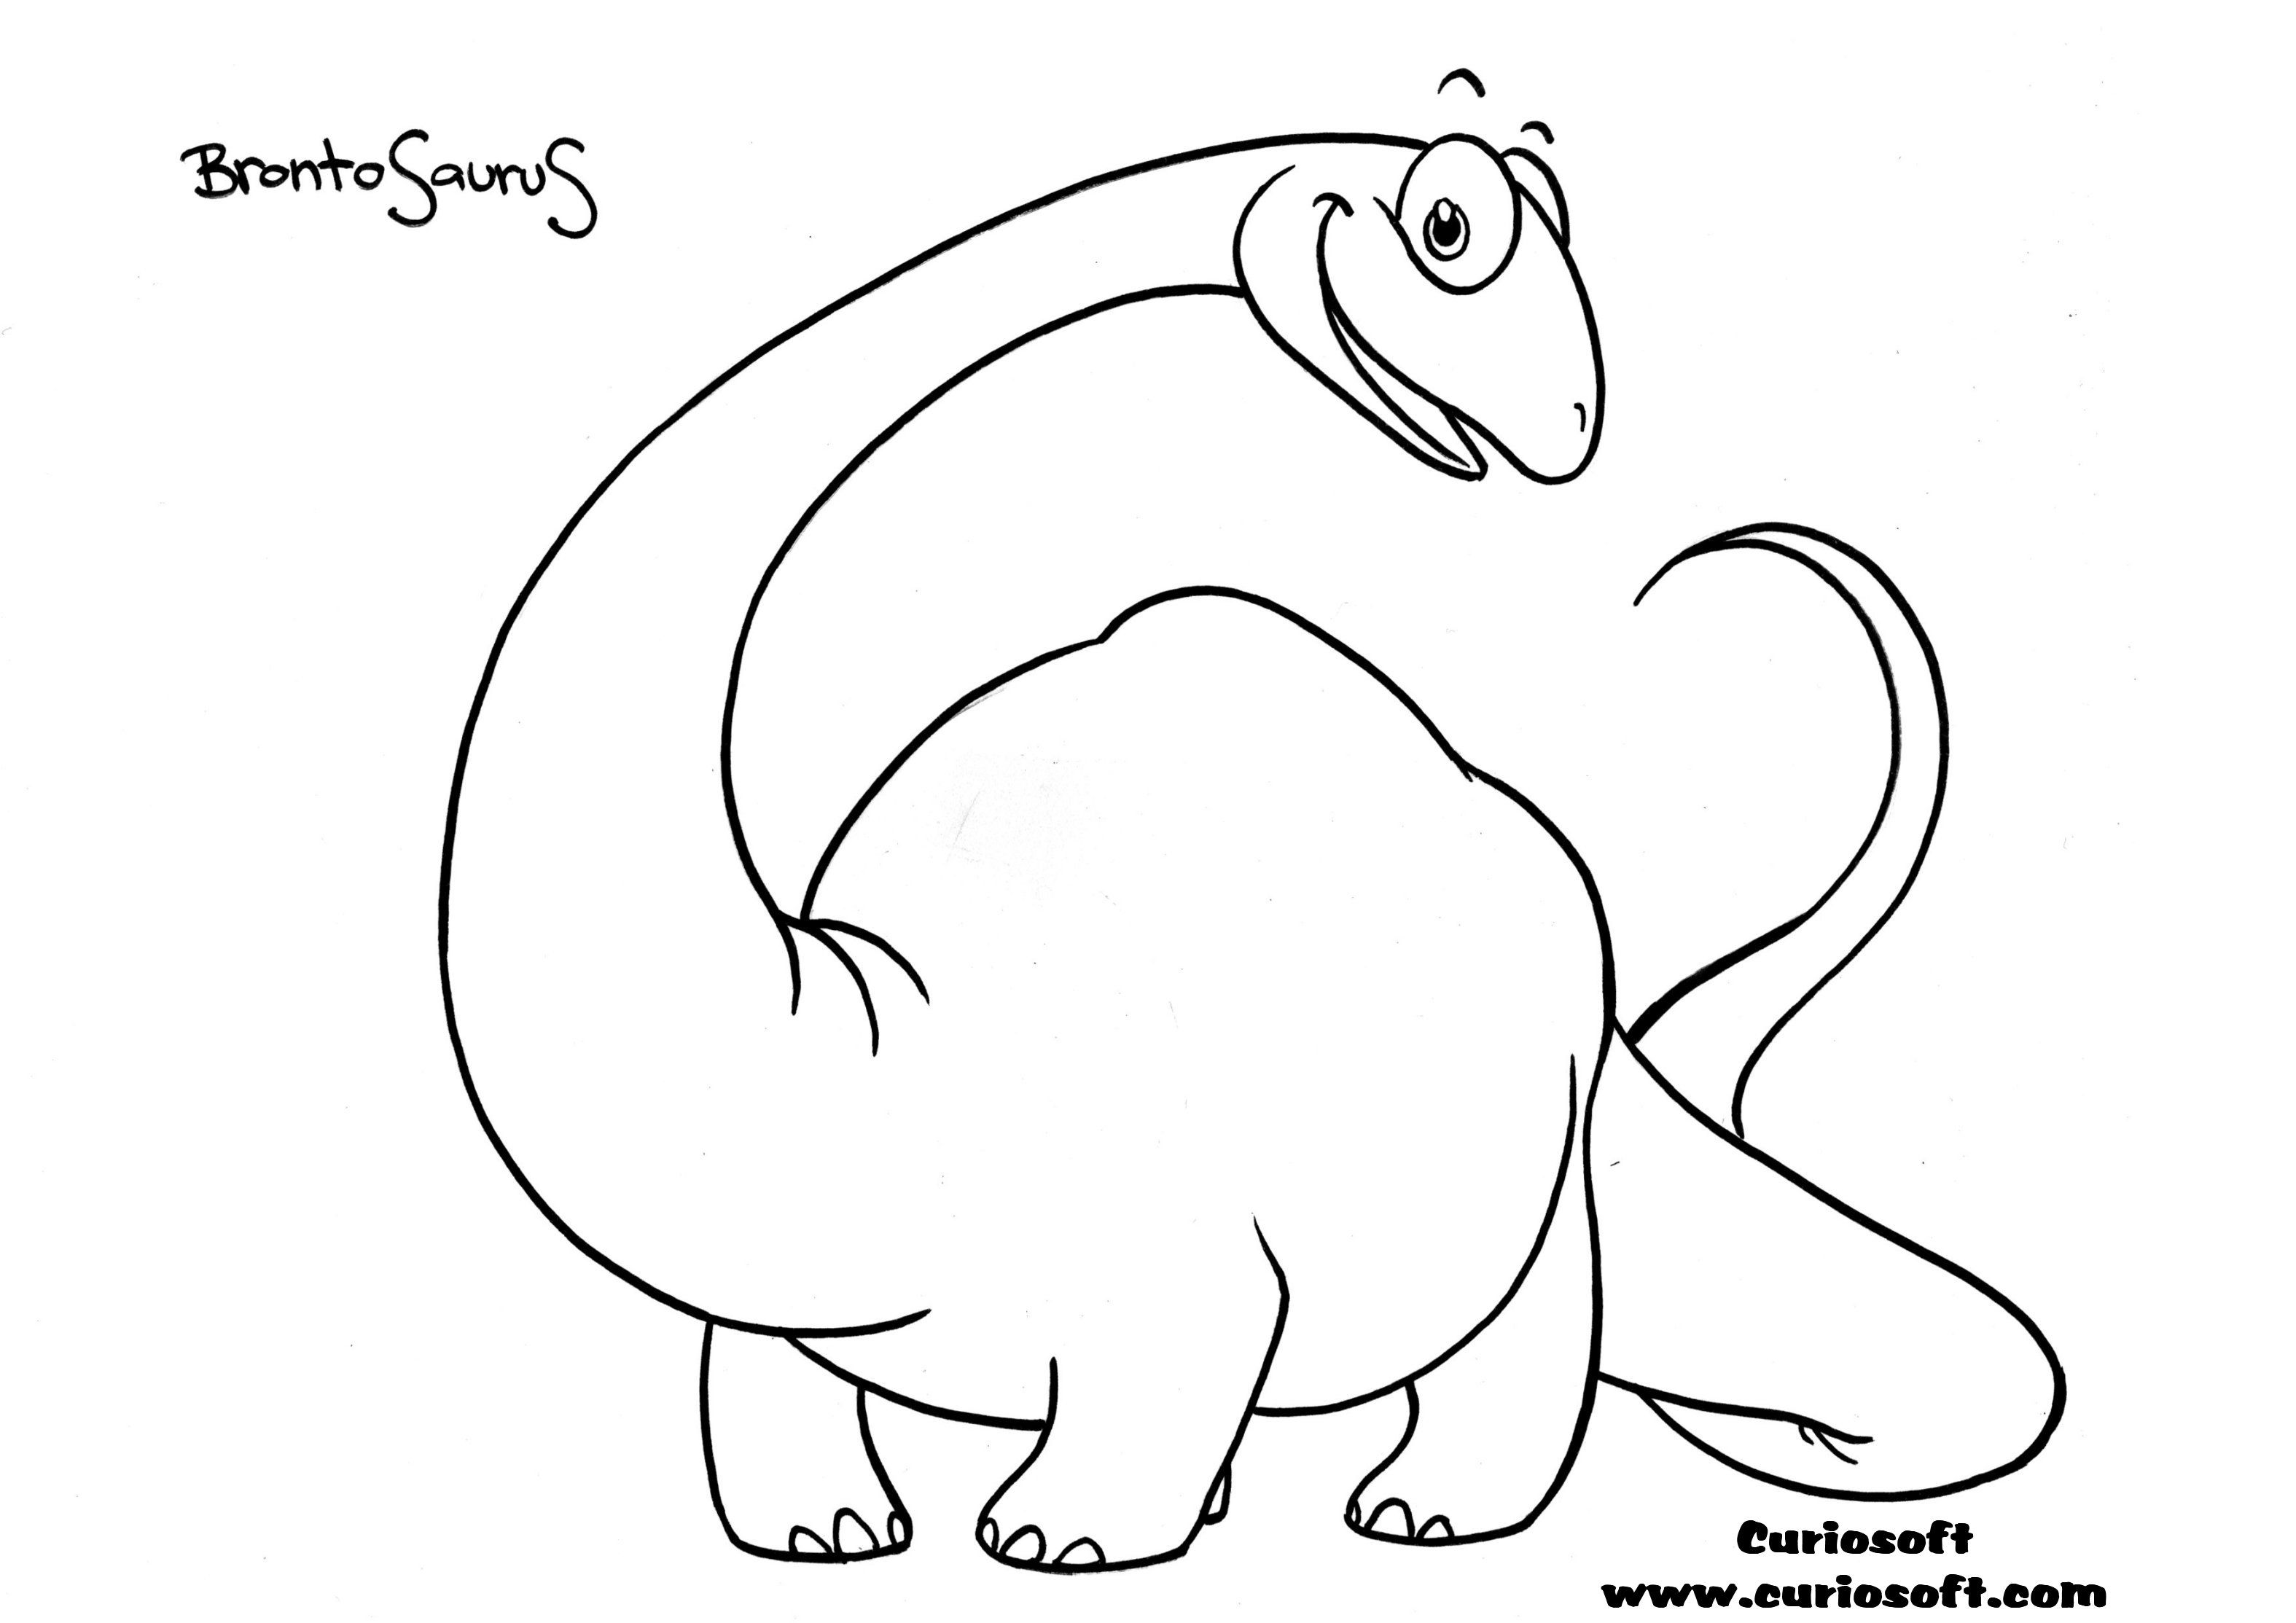 dinosaur coloring pages cute illustrations wit names perfect for my 4 yo - Dinosaur Coloring Pages With Names